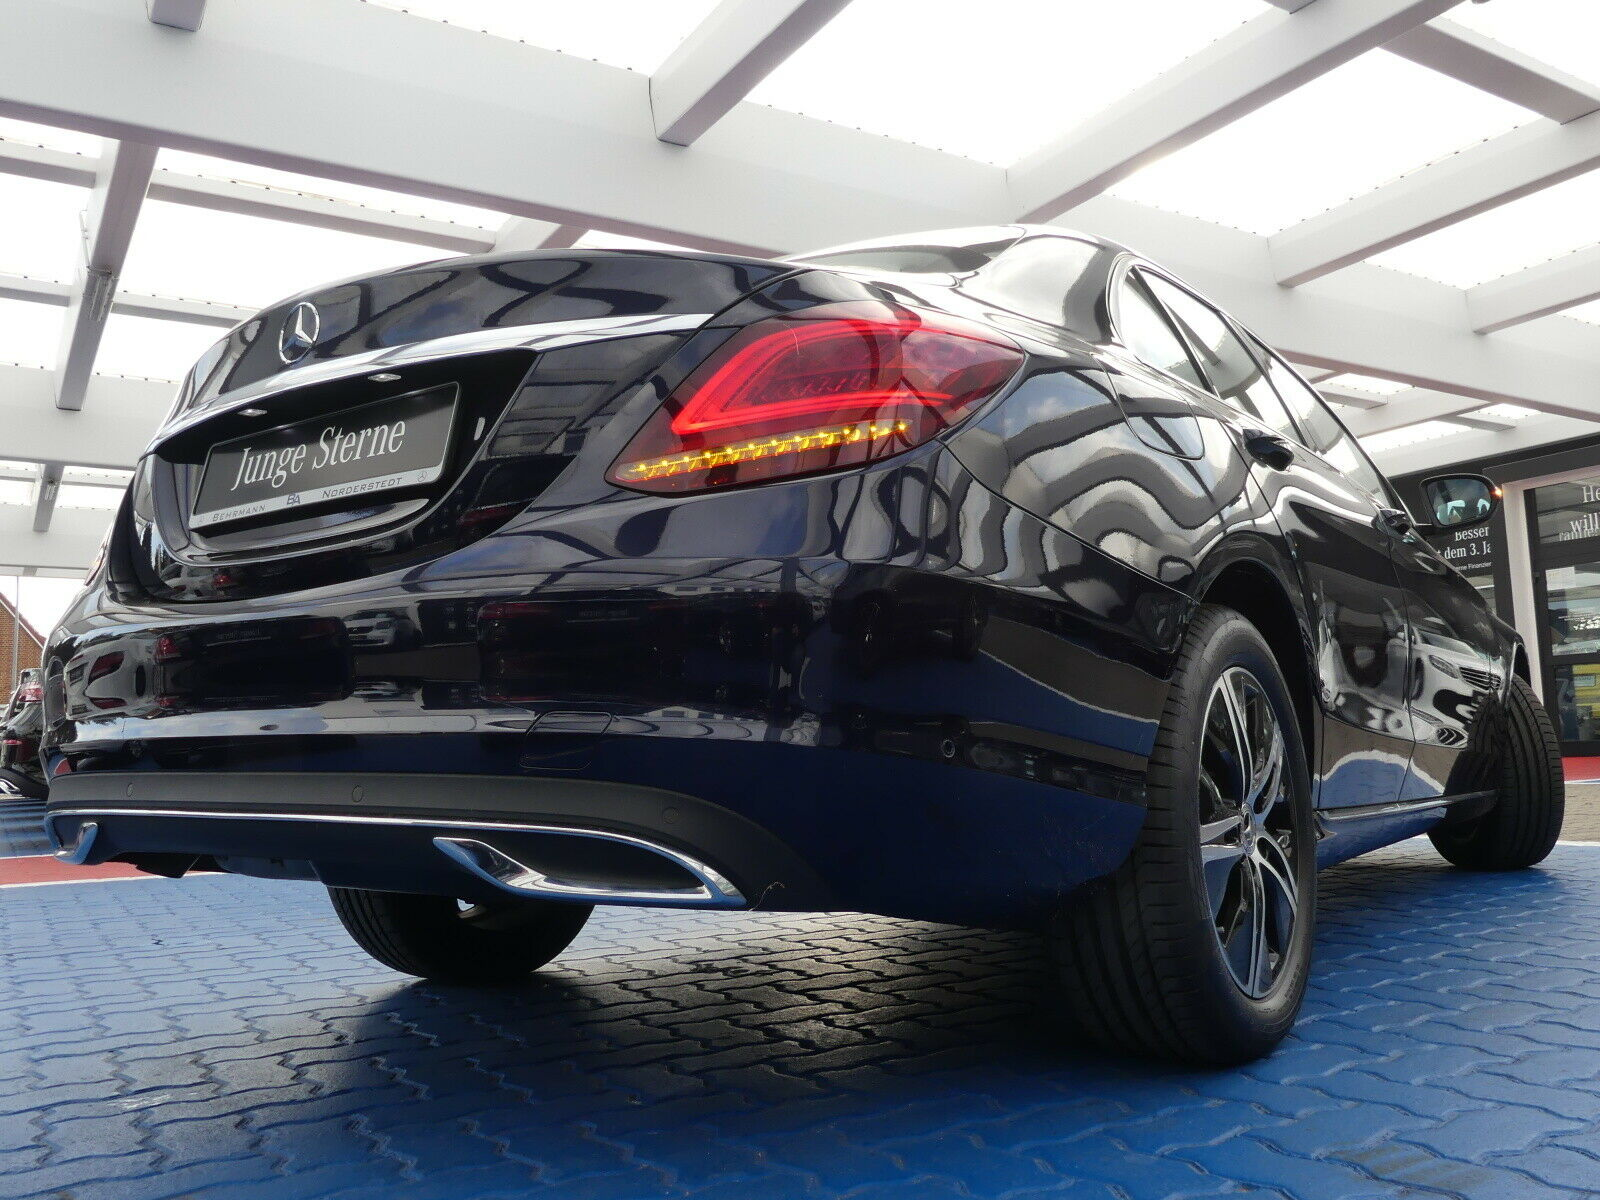 MERCEDES-BENZ C 180 Avantgarde +Panorama+R-Kamera+LED+EURO 6d+